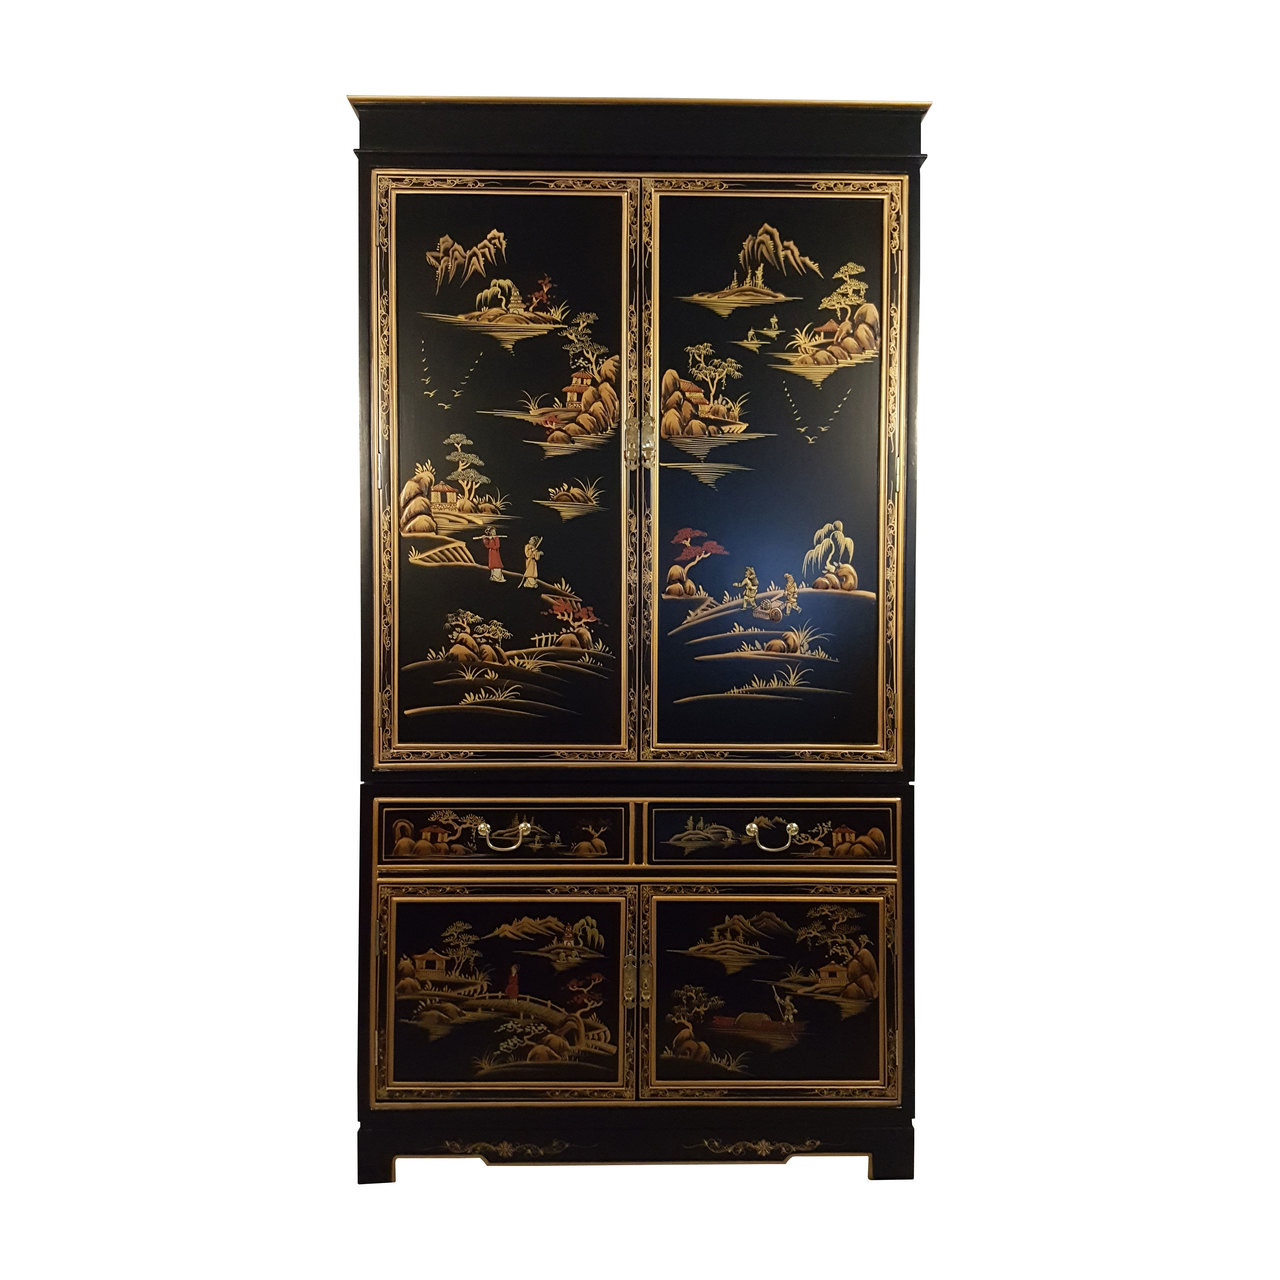 Oriental Landscape Armoie Black And Gold Chinese Landscape Art For